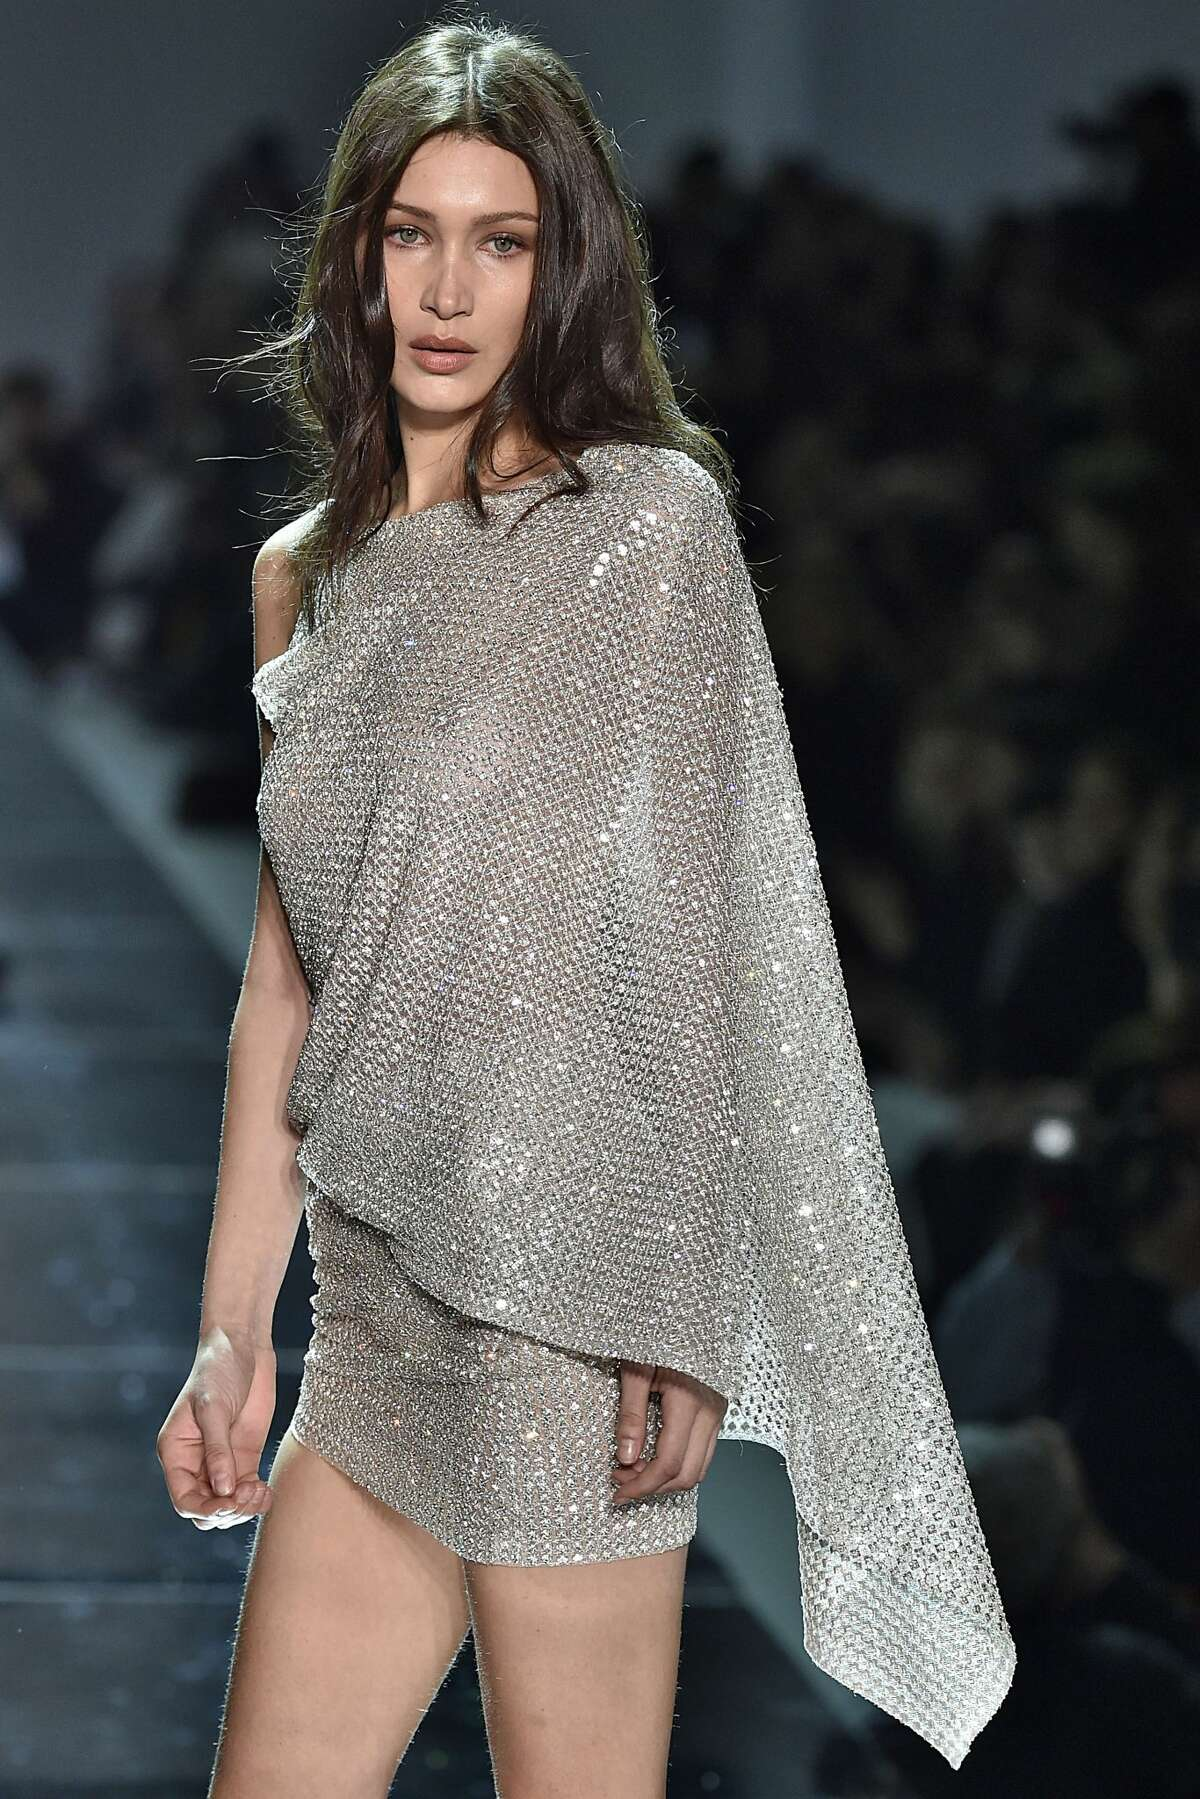 Bella Hadid walks the runway during the Alexandre Vauthier Spring Summer 2017 show in Swarovskicrystal dress. >>Keep clicking for more of Hadid's looks going down the Paris runways.